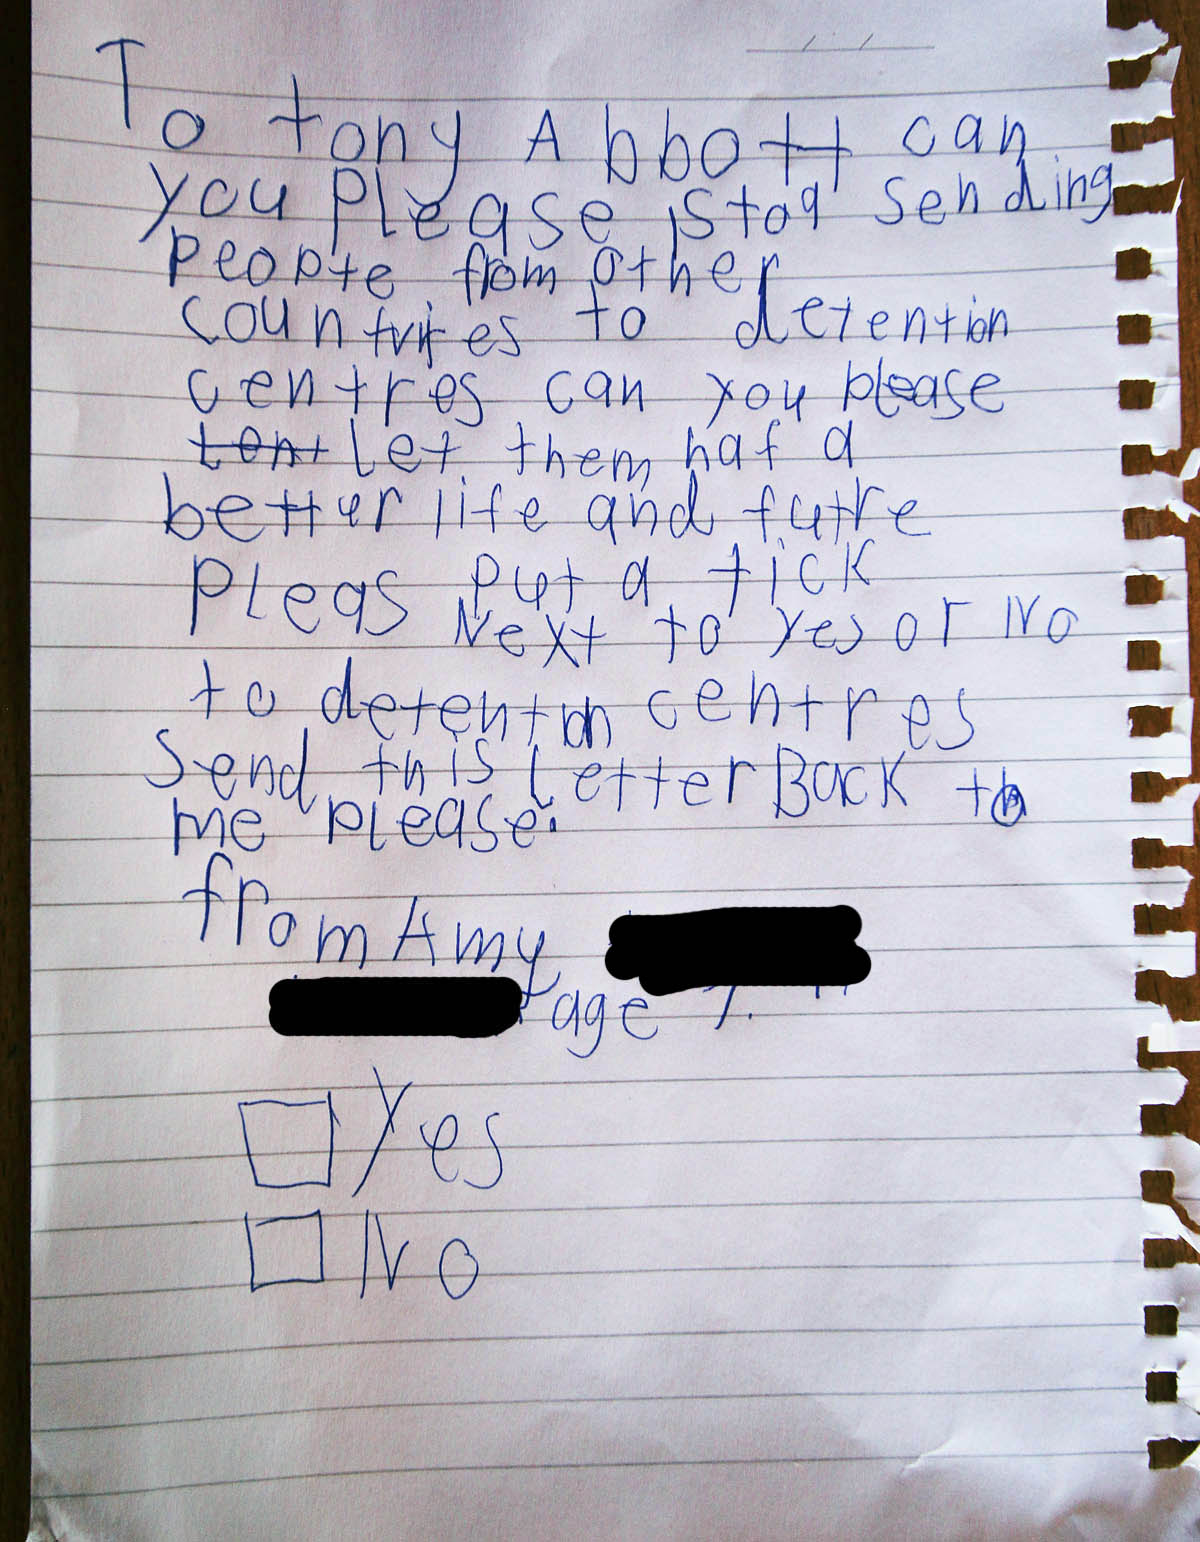 Amy's Letter to Tony Abbott